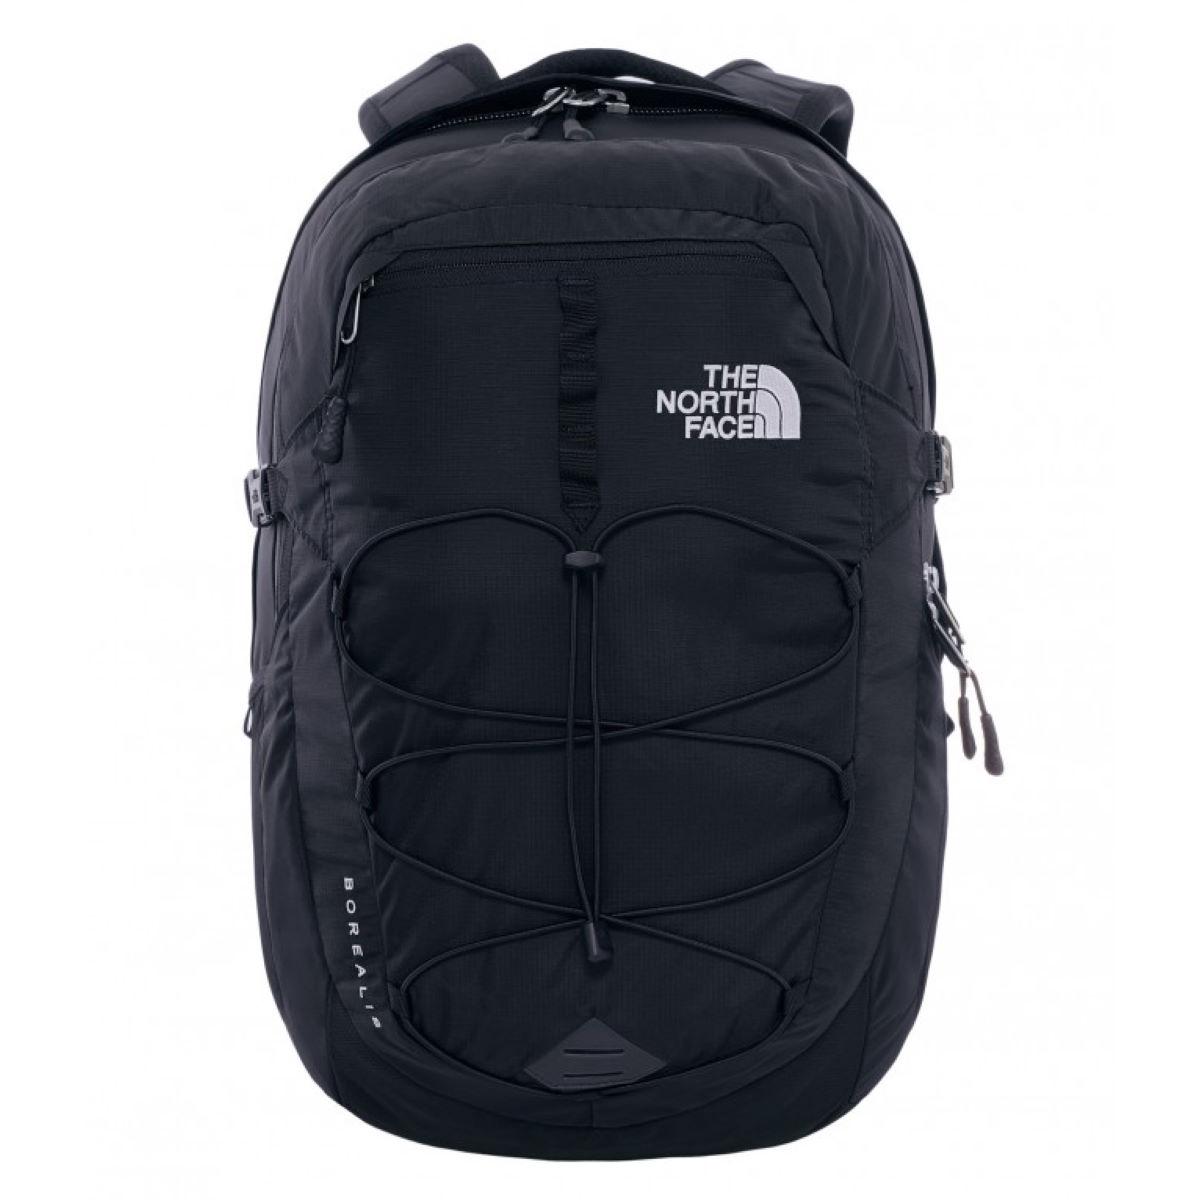 Mochila The North Face Borealis - Mochilas